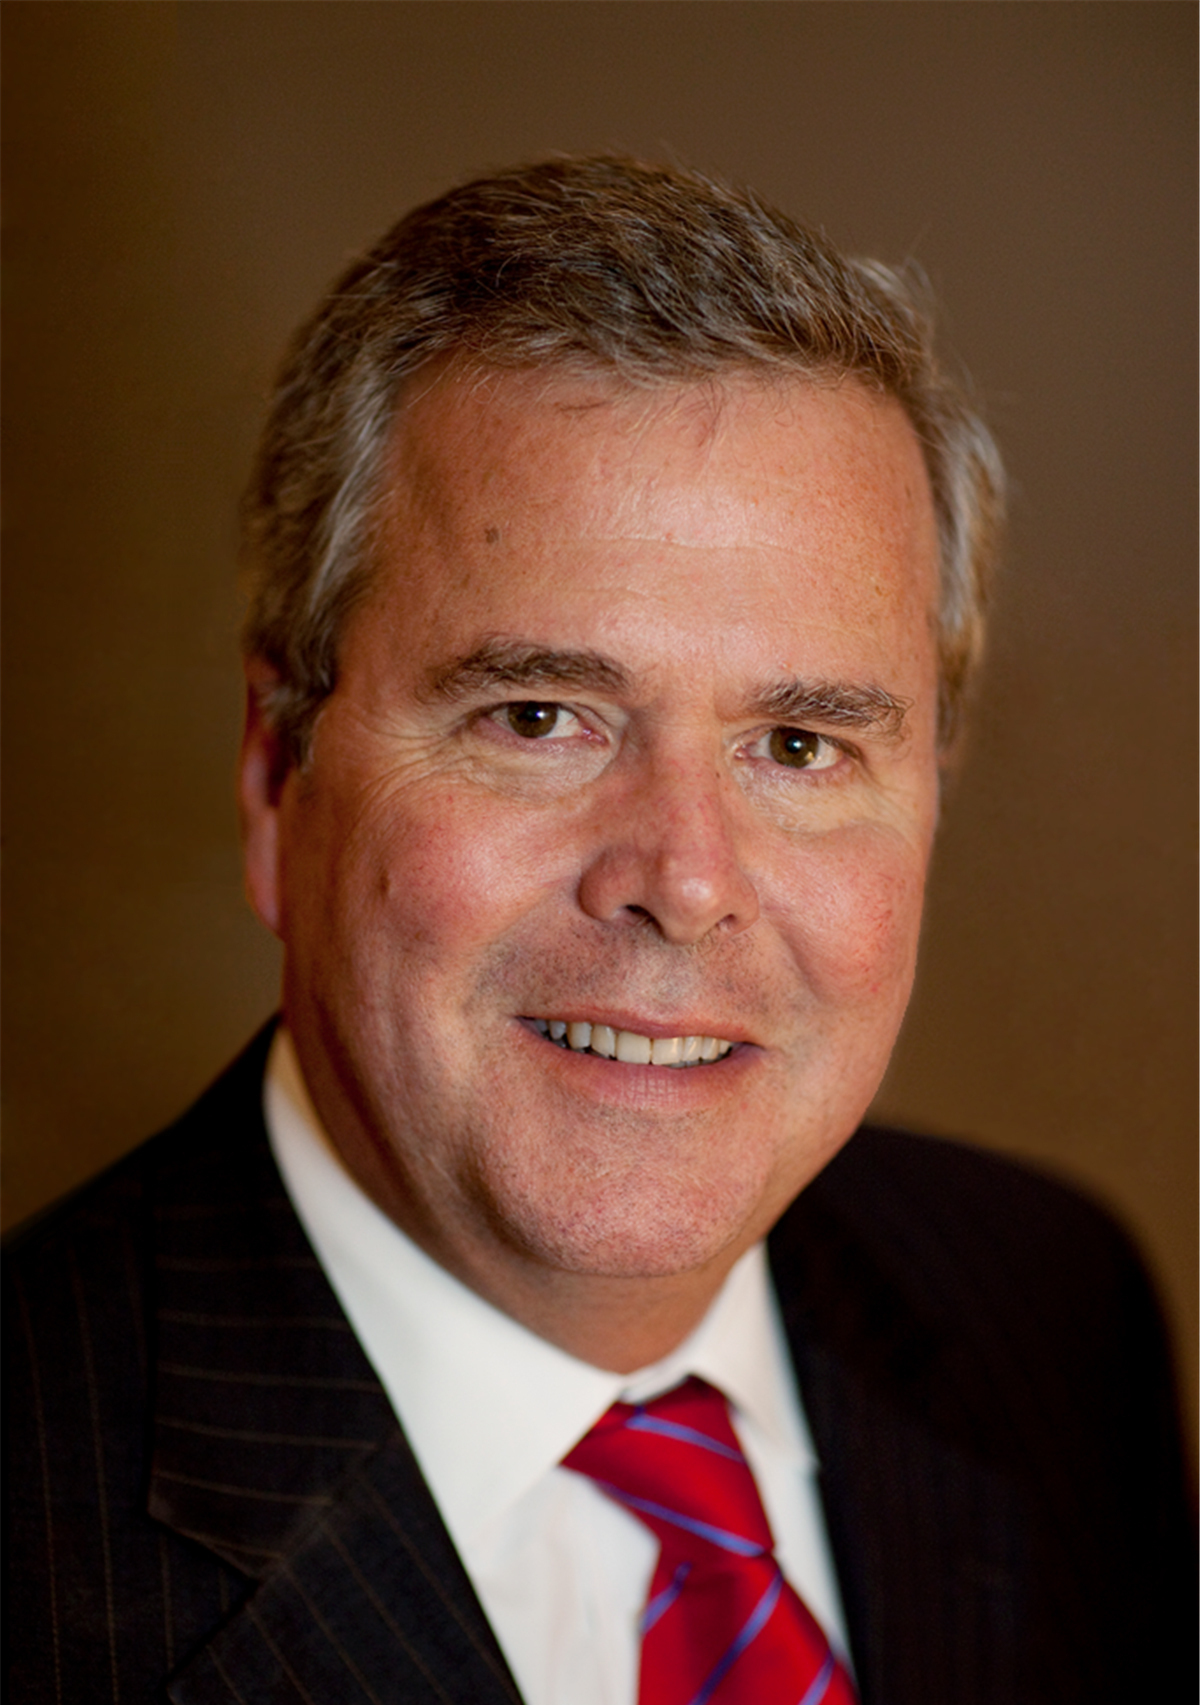 Jeb Bush was the governor of Florida from 1999 to 2007.